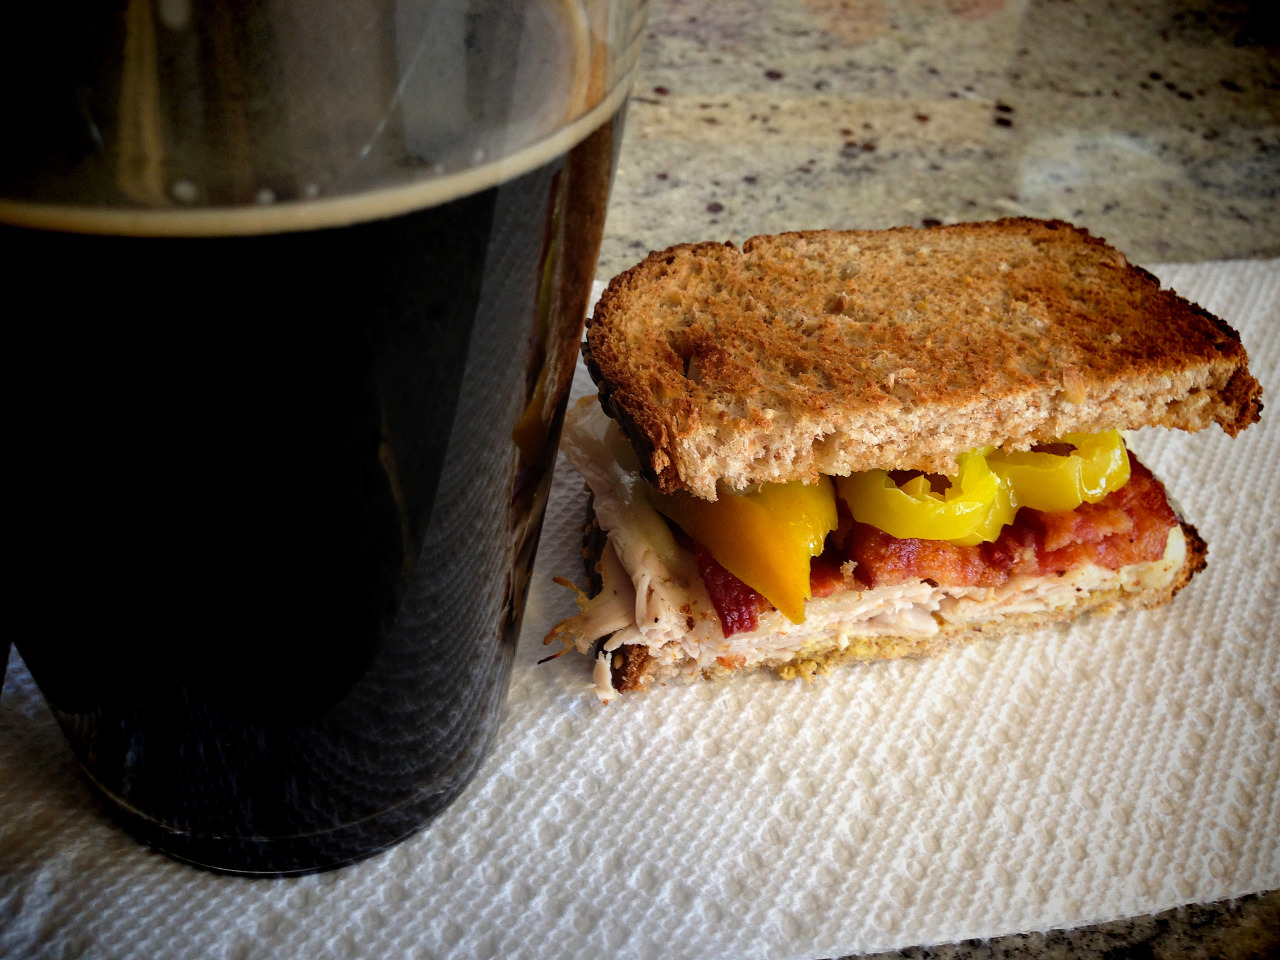 Ames Homebrew Milk Stout with a honey-glazed turkey and bacon sandwich with mustard, mayo, and hot banana peppers